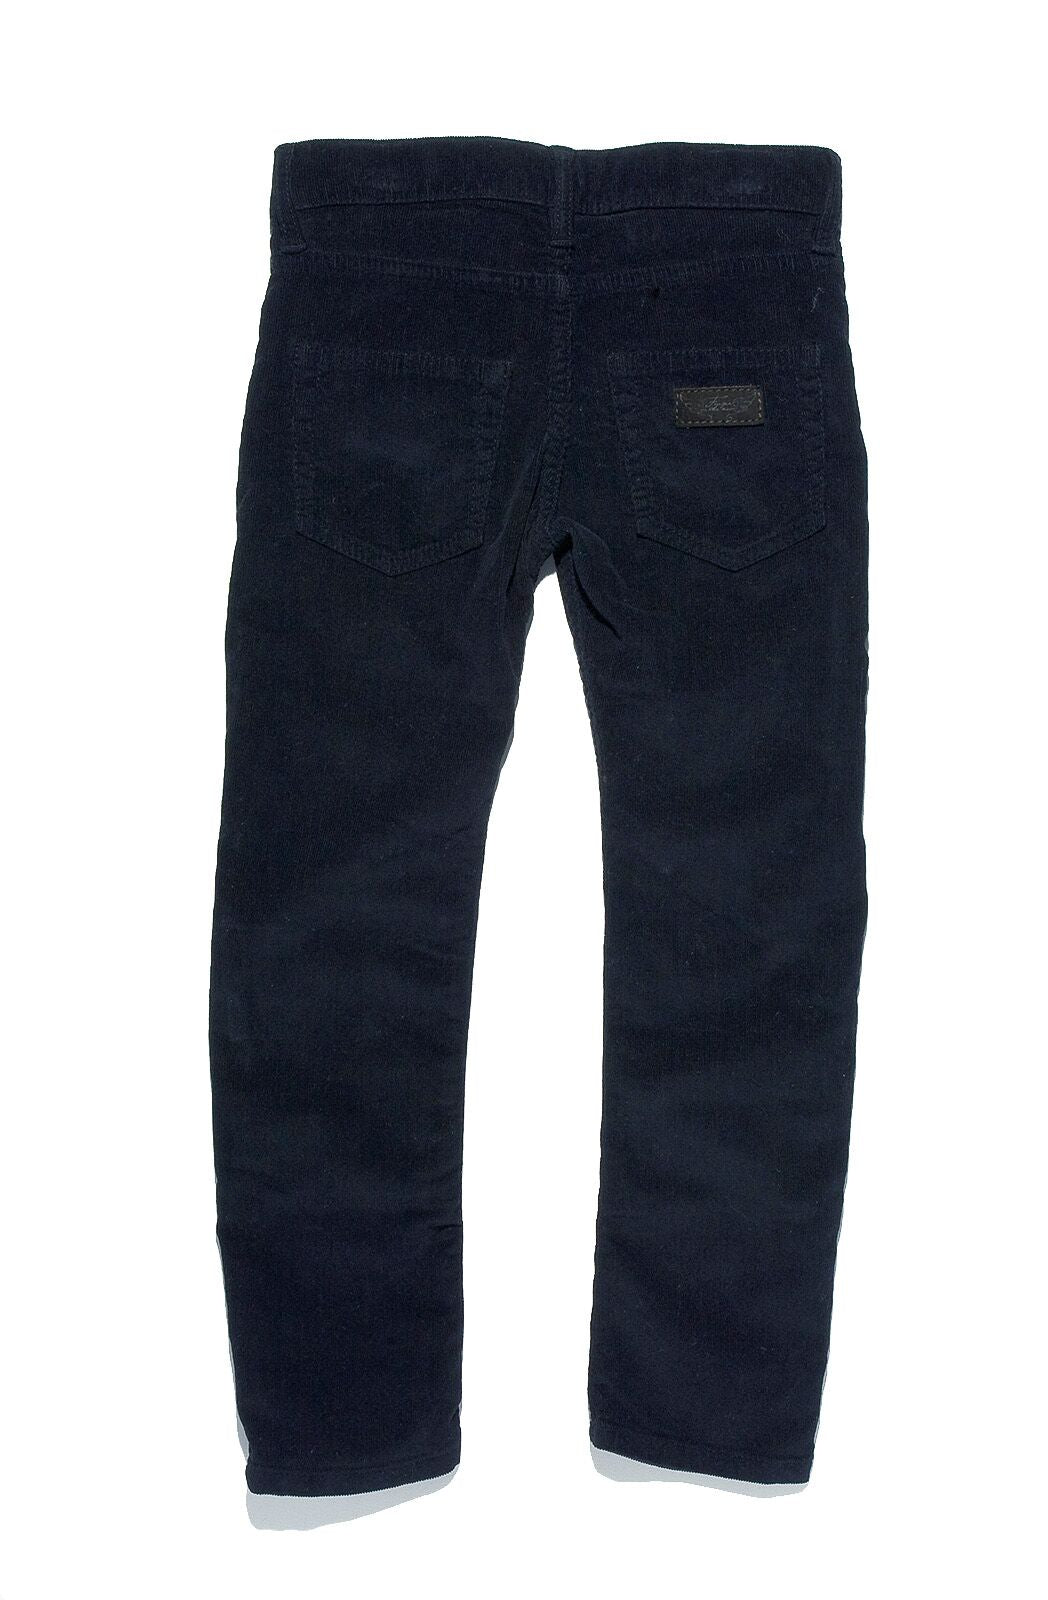 NORTON Cord Navy - 5-Pocket Straight Fit Jean